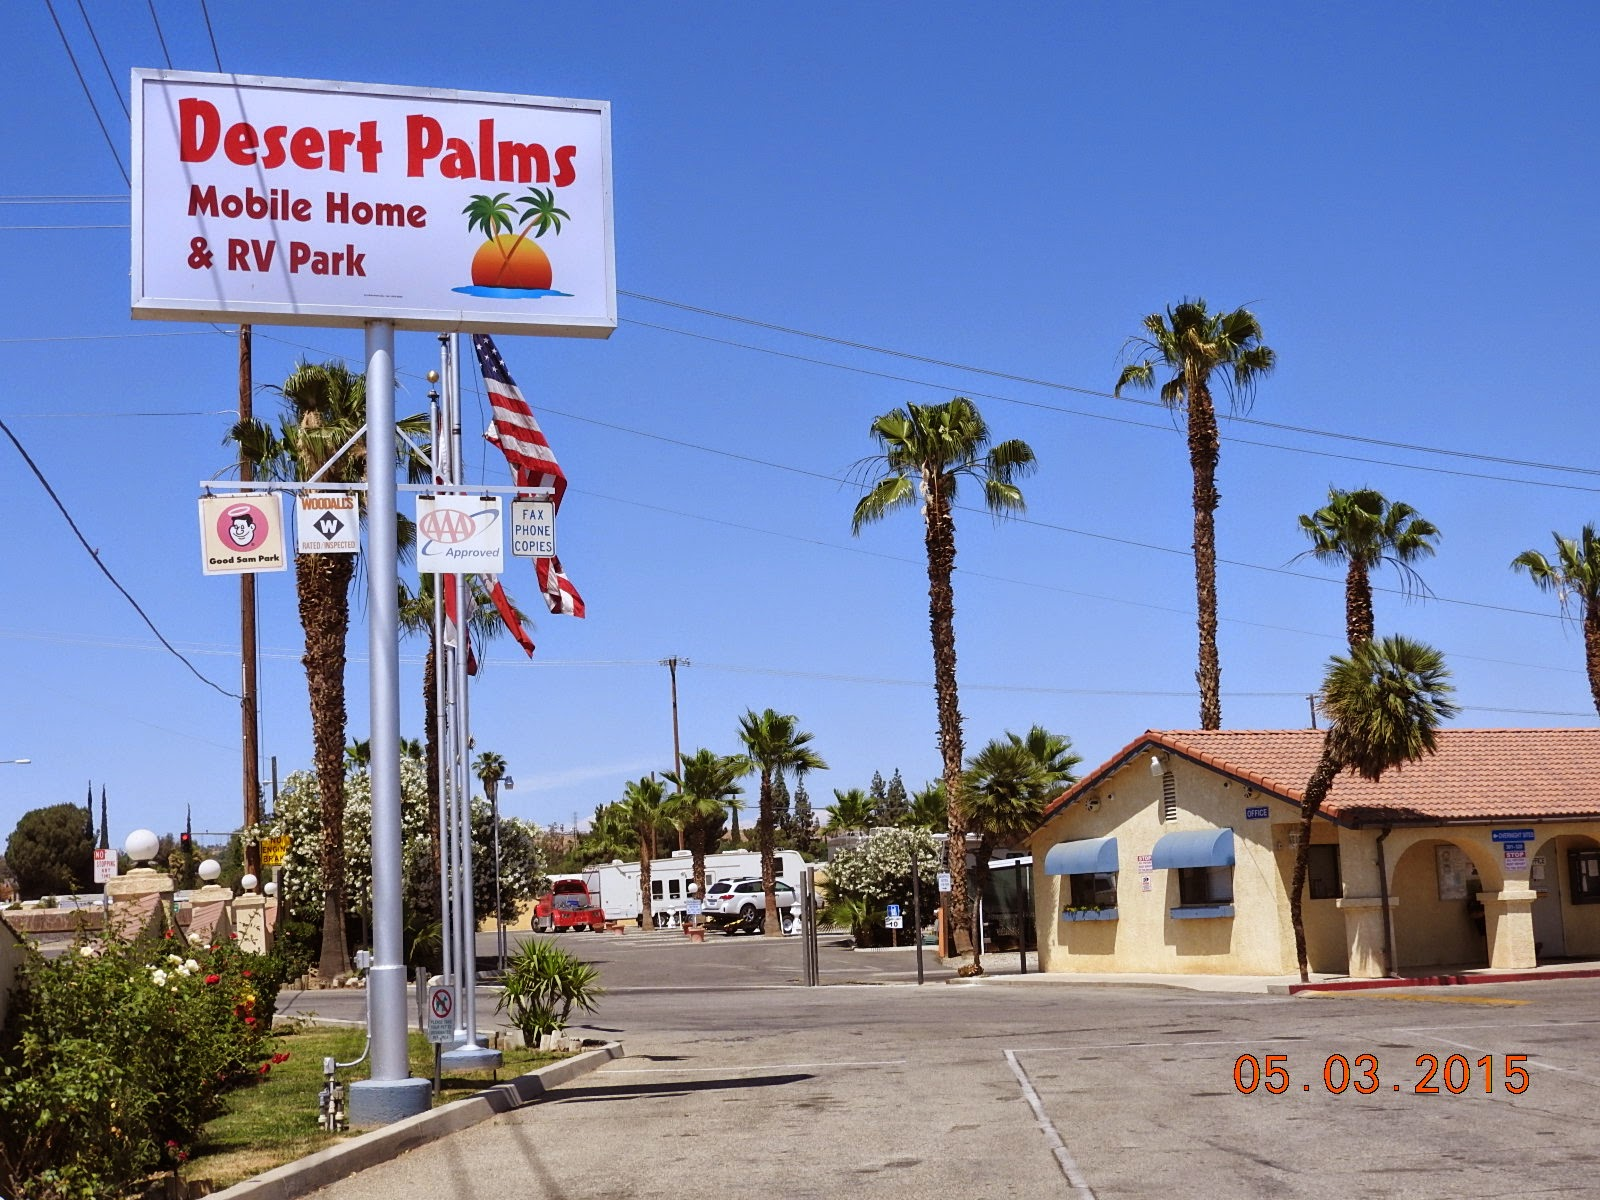 This Is Where We Are Staying For The Night Why It Many RV Parks Have Palm Trees Arrived About Noon And Hot